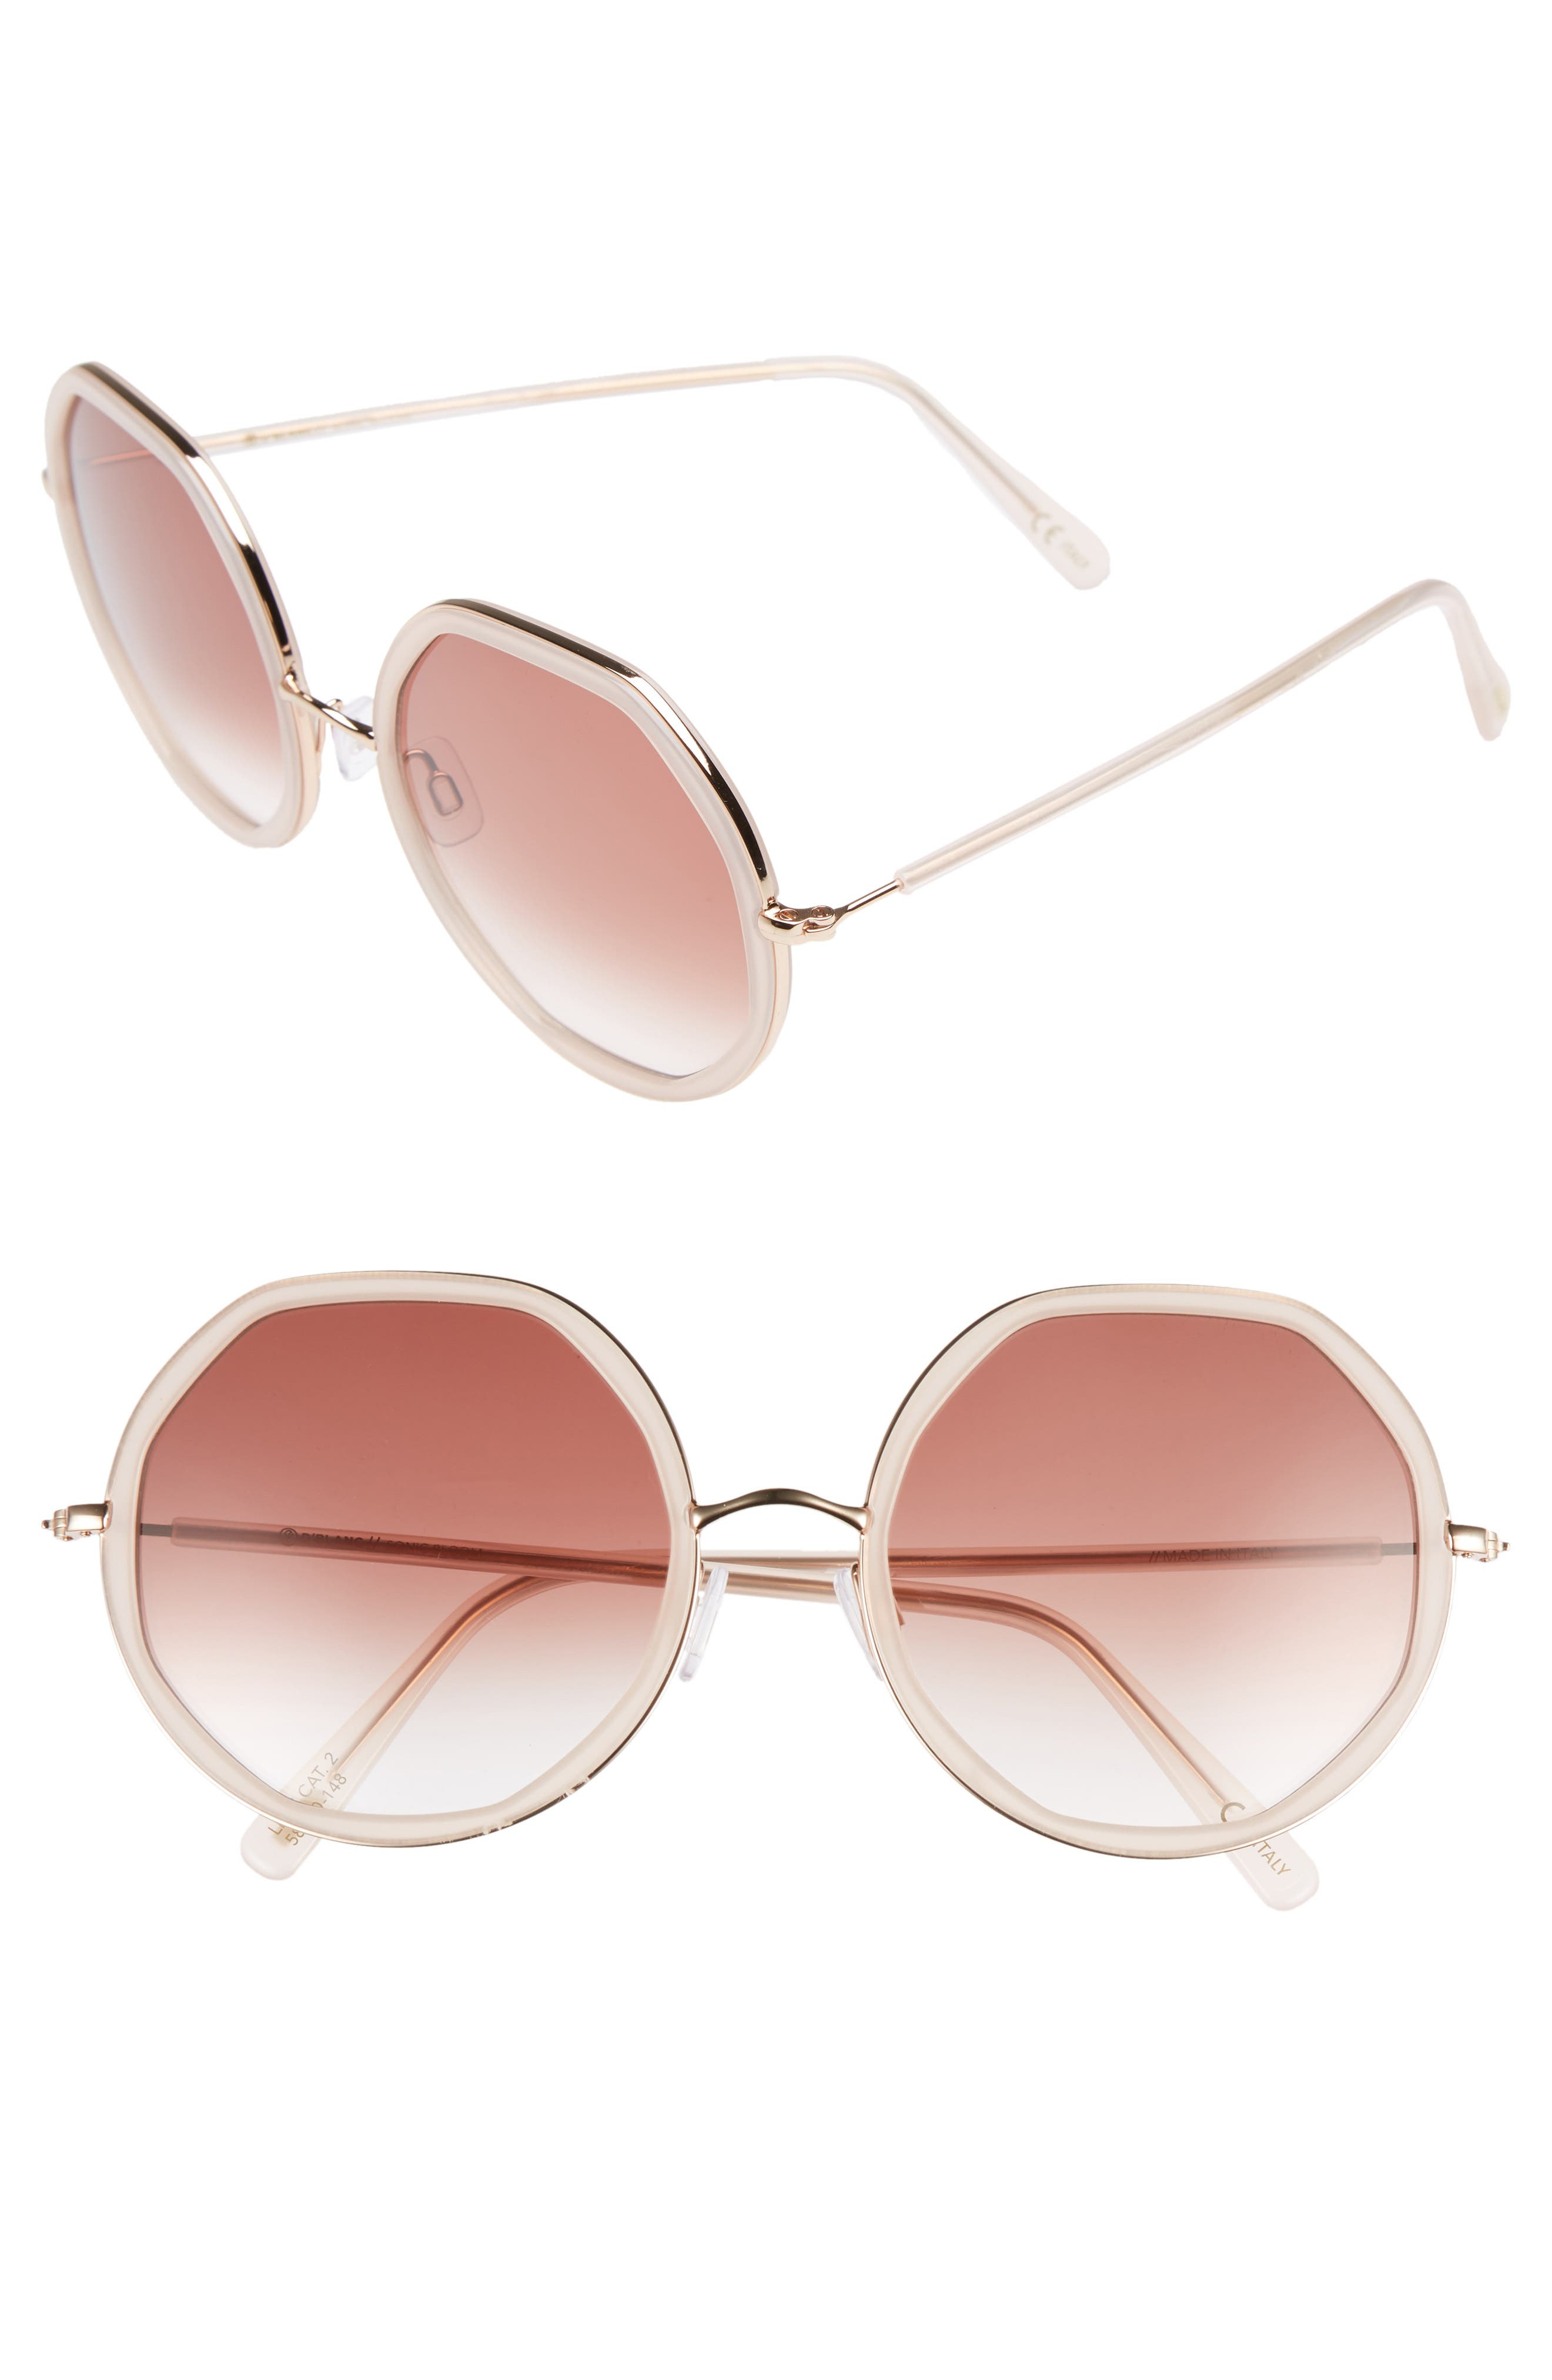 D'BLANC Sonic Bloom 58mm Sunglasses,                             Main thumbnail 1, color,                             Octagon Blush